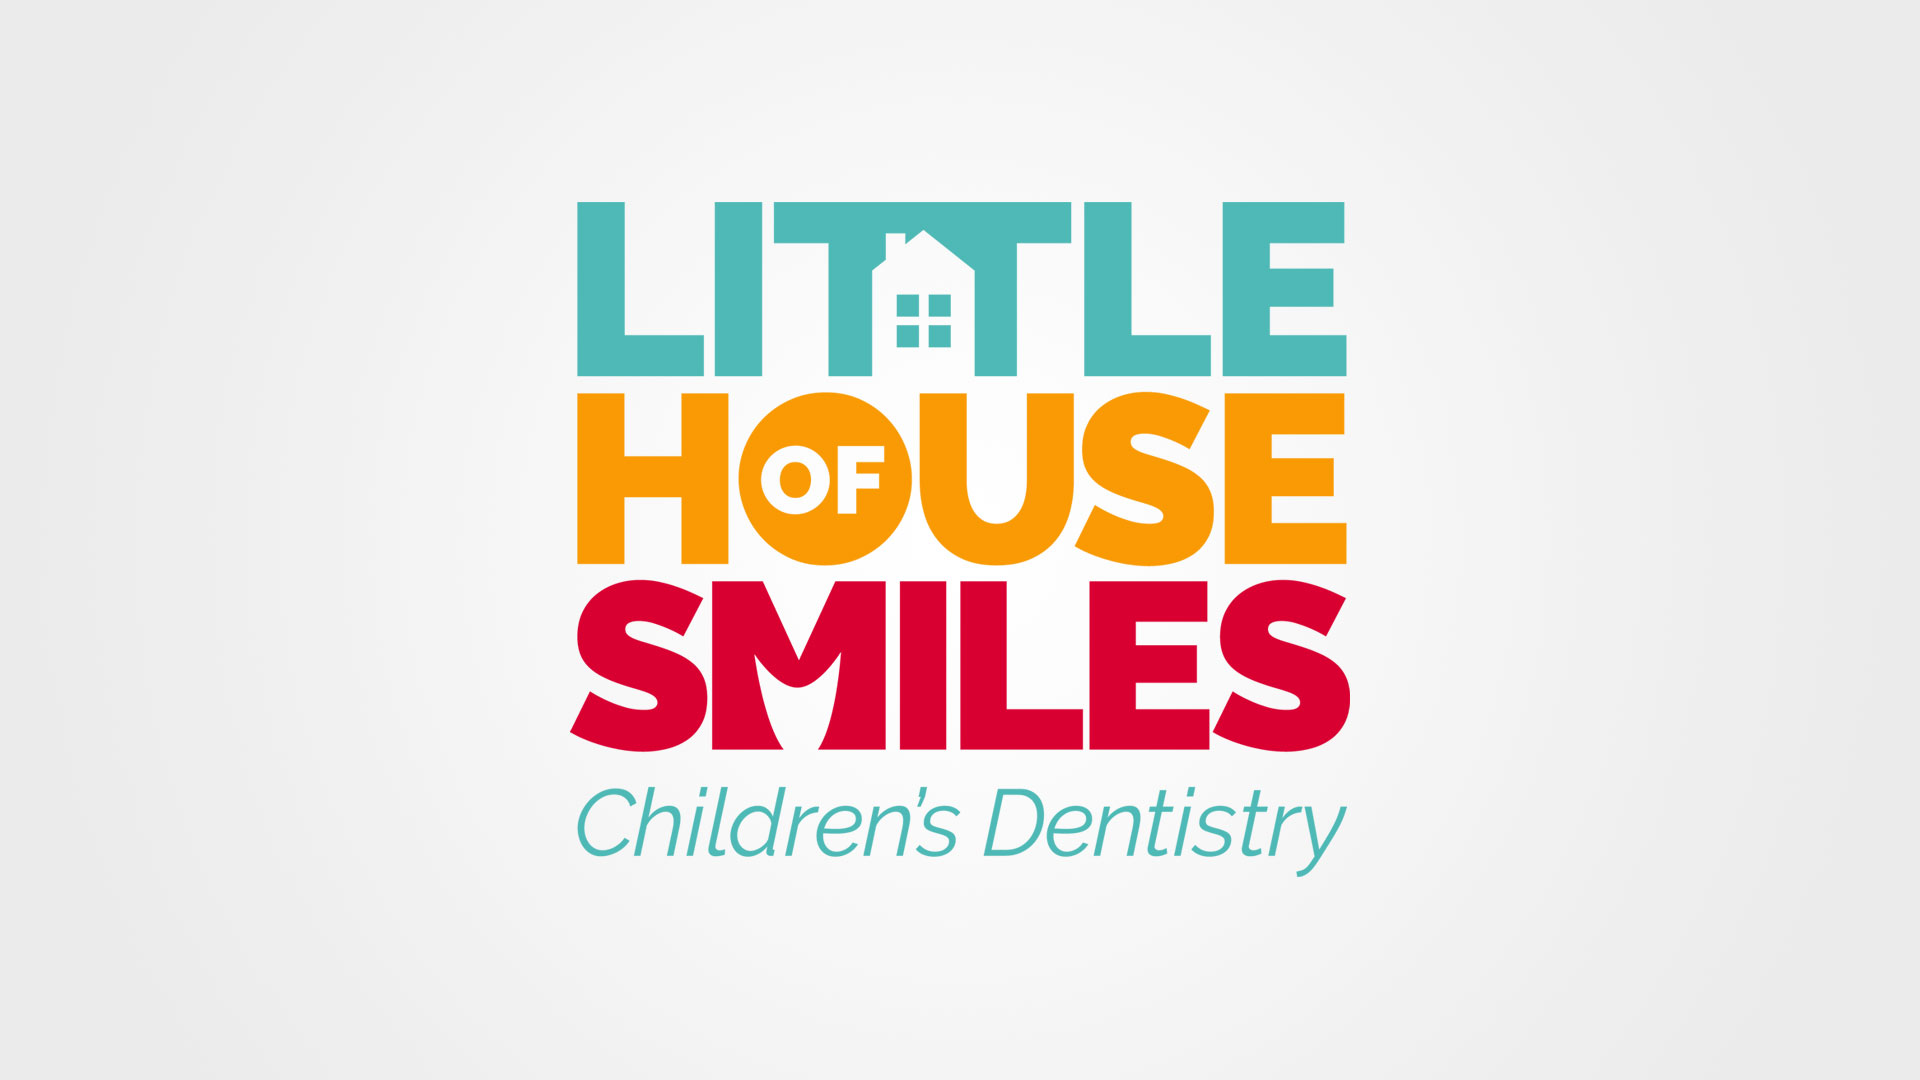 Little House of Smiles Children's Dentistry